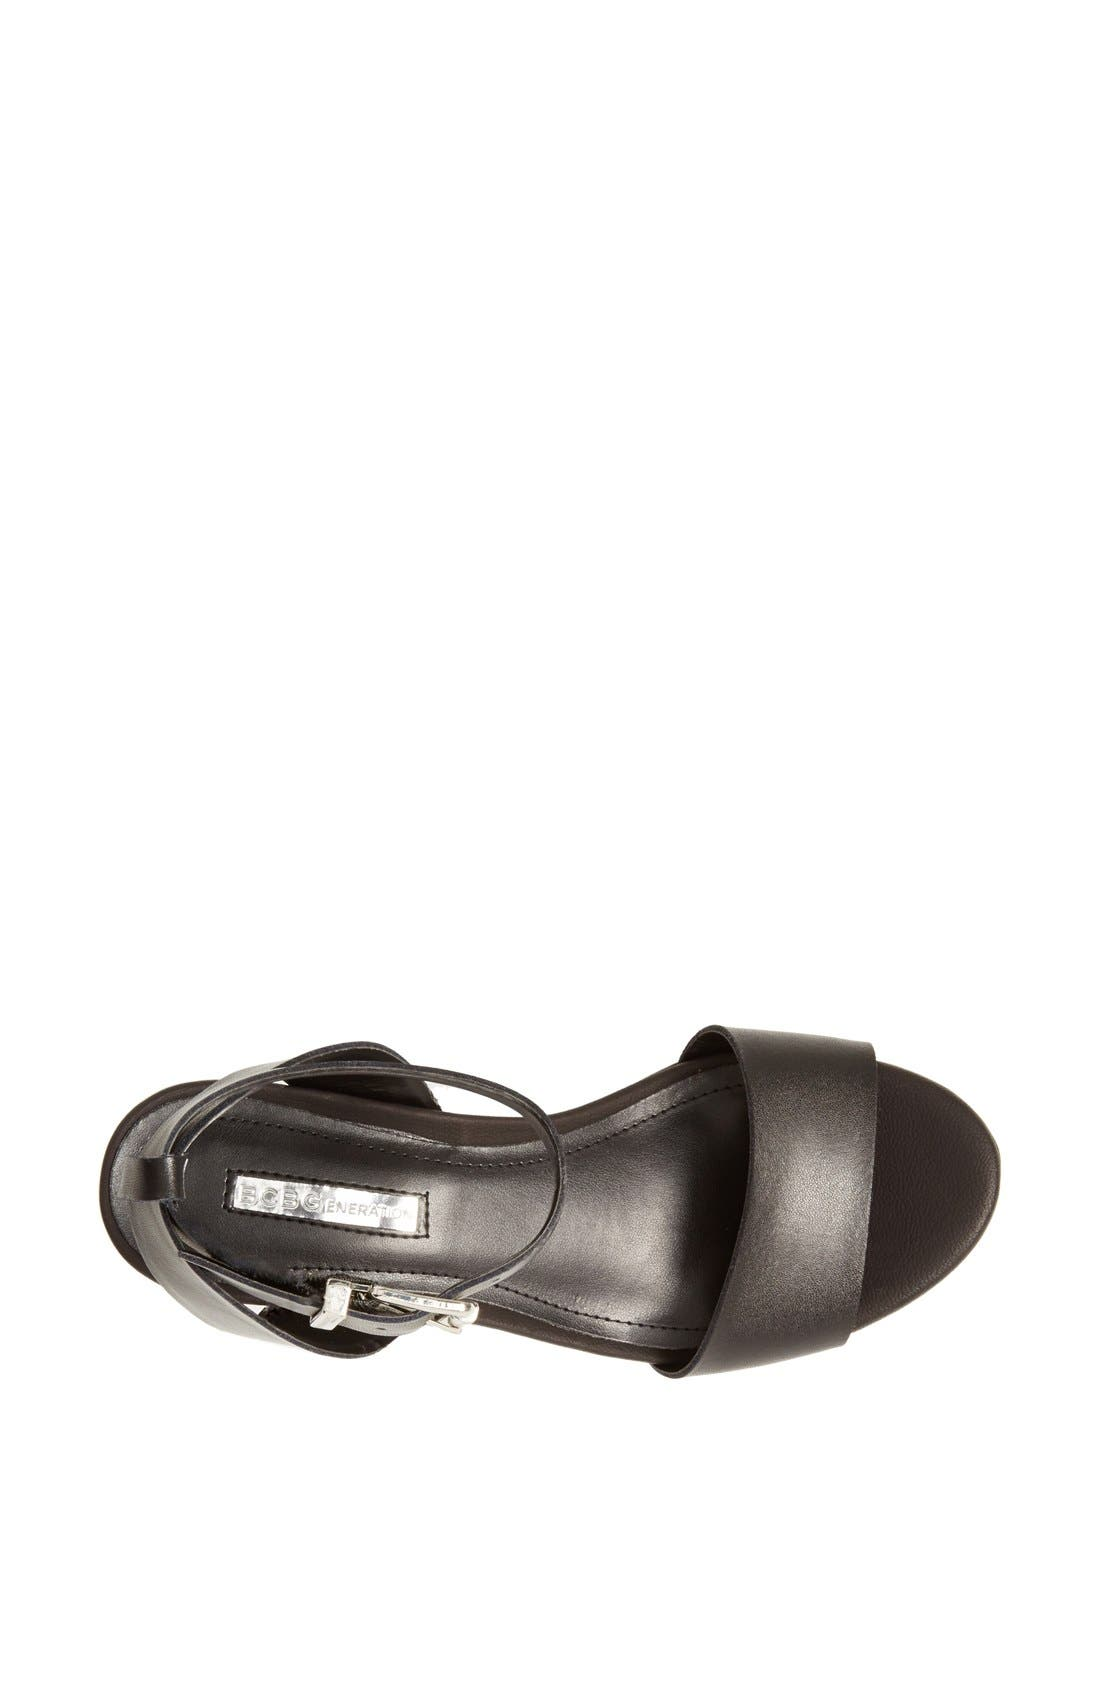 Alternate Image 3  - BCBGeneration 'Fiji' Wedge Sandal